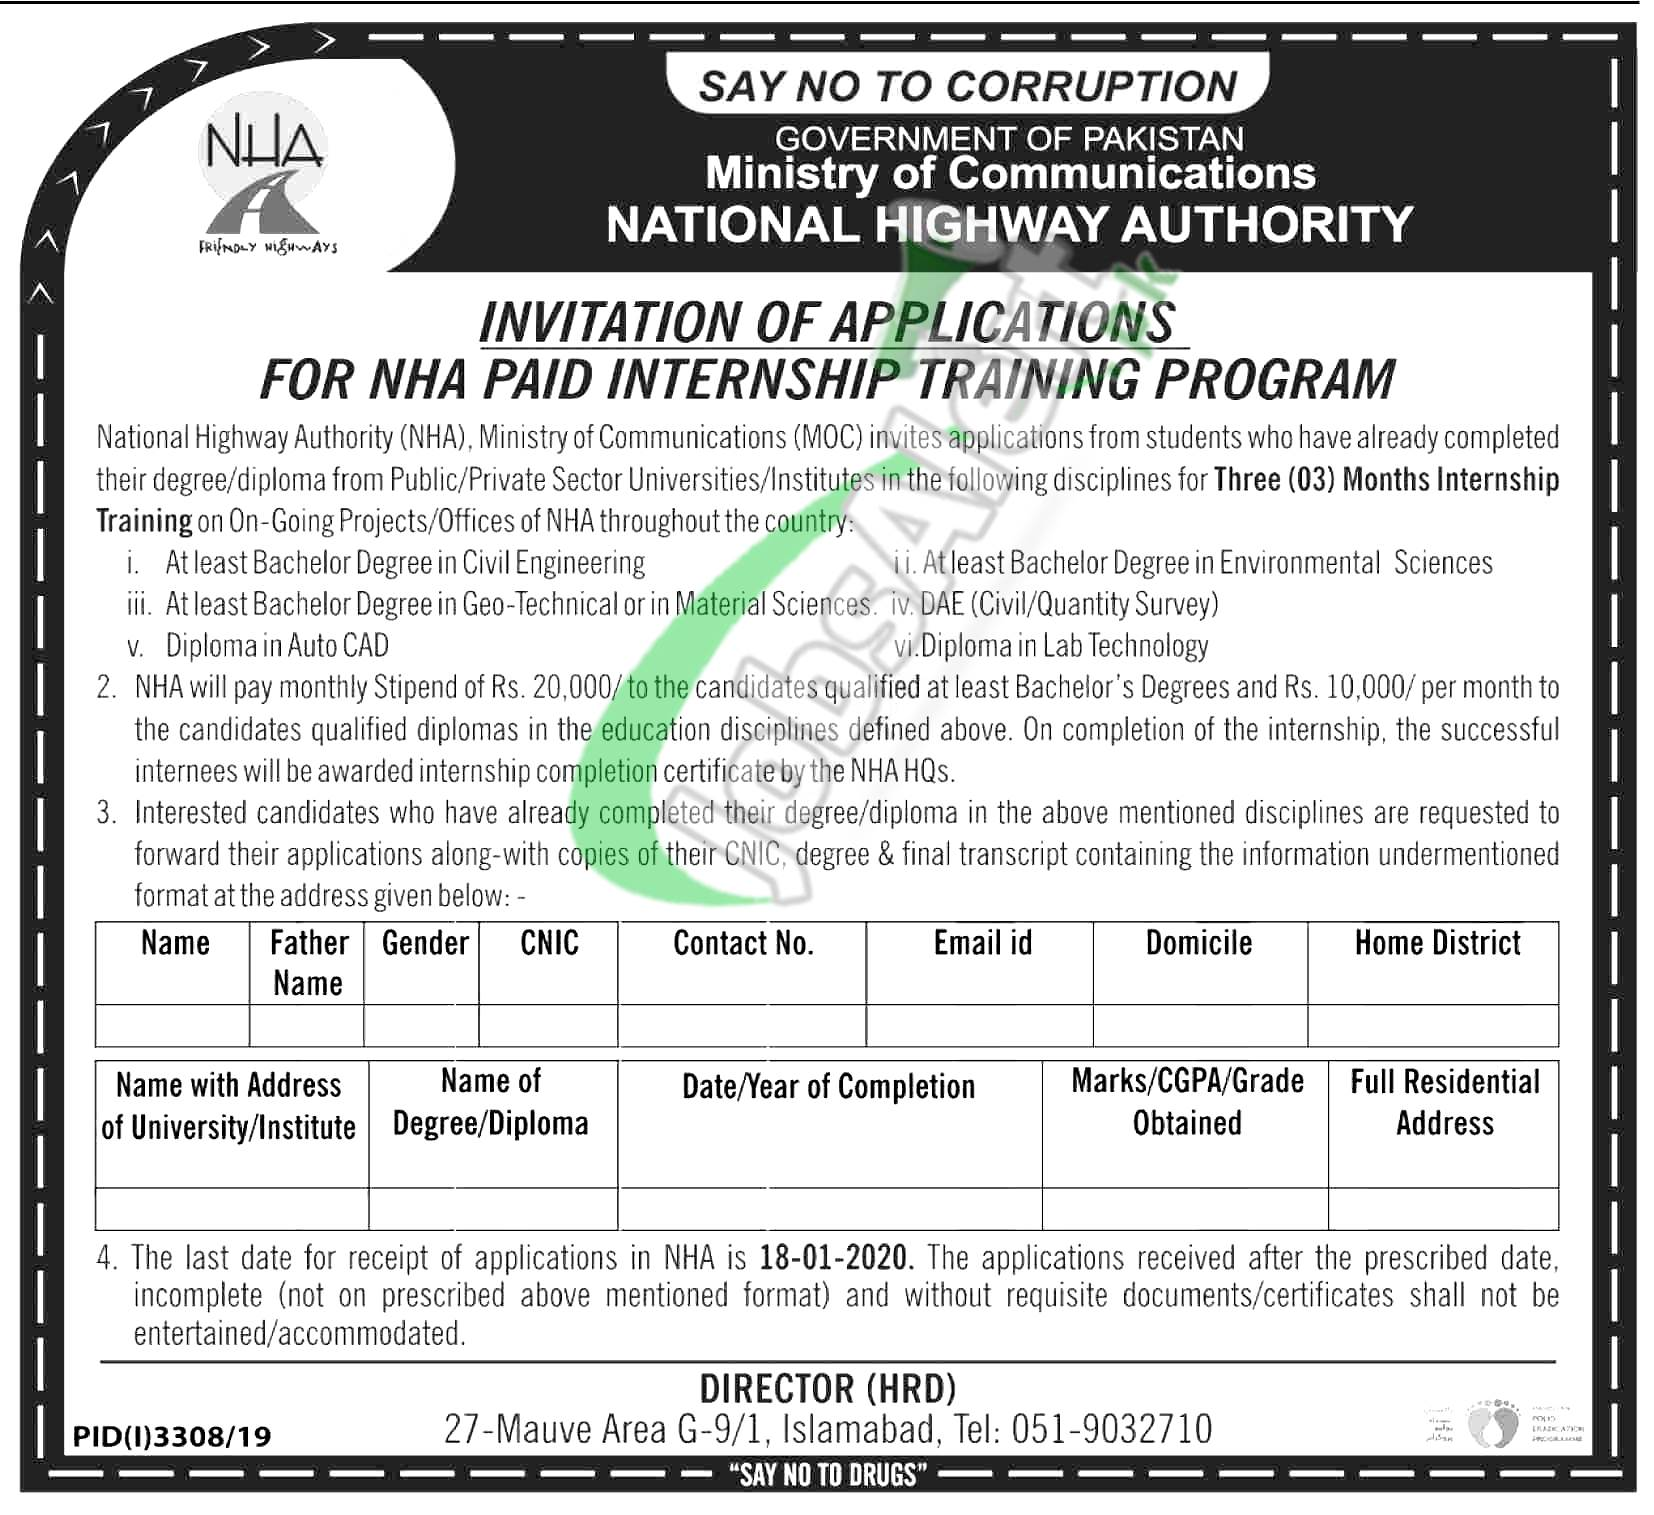 Government of Pakistan Ministry of Communications National Highway Authority